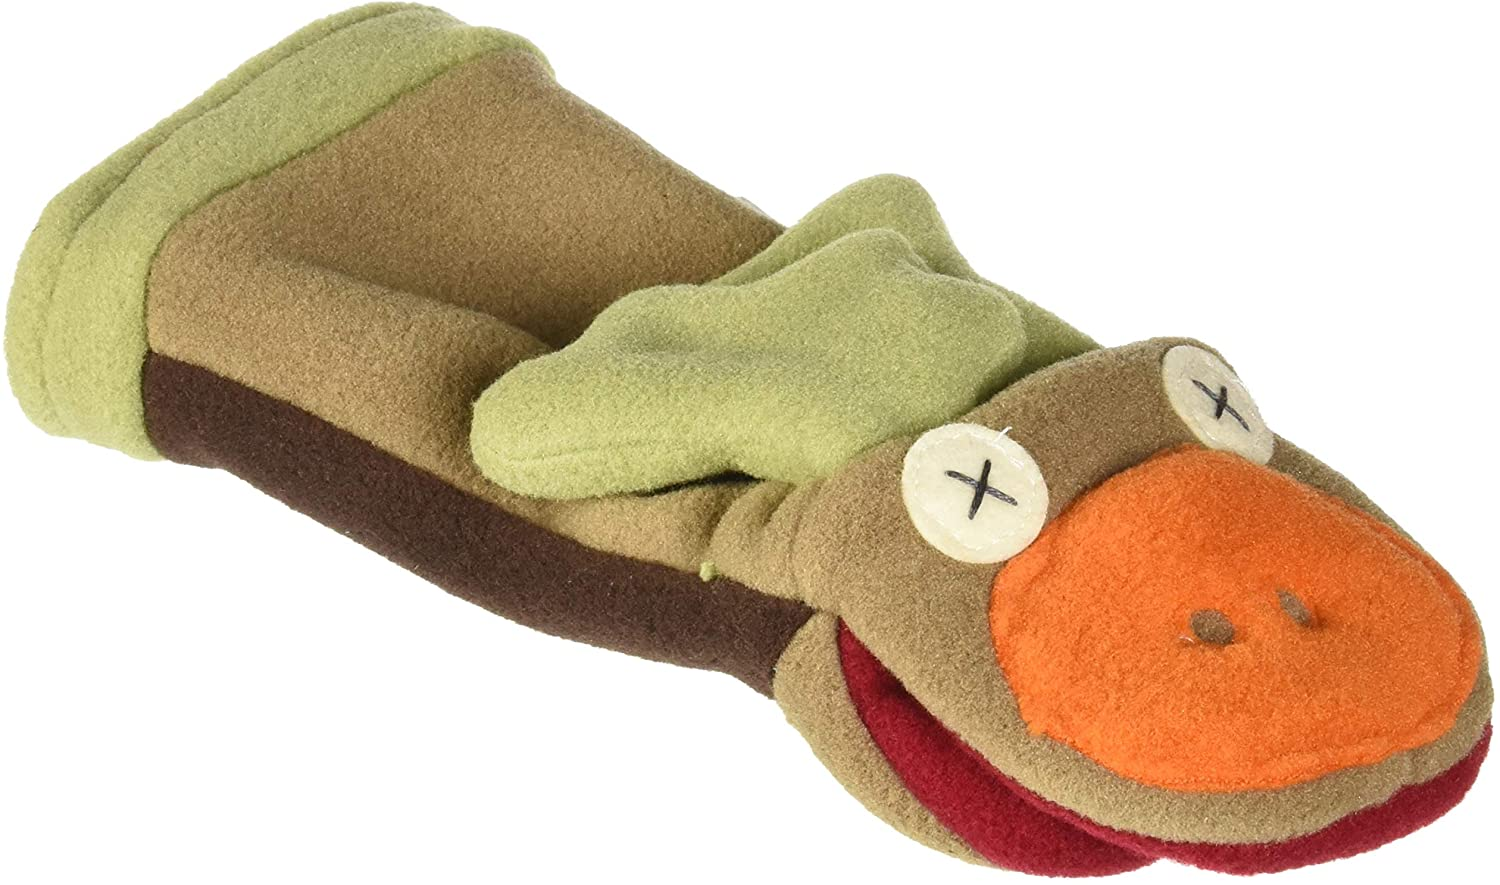 Cate & Levi - Fleece Hand Puppet - Handmade in Canada - Great for Storytelling (Moose)